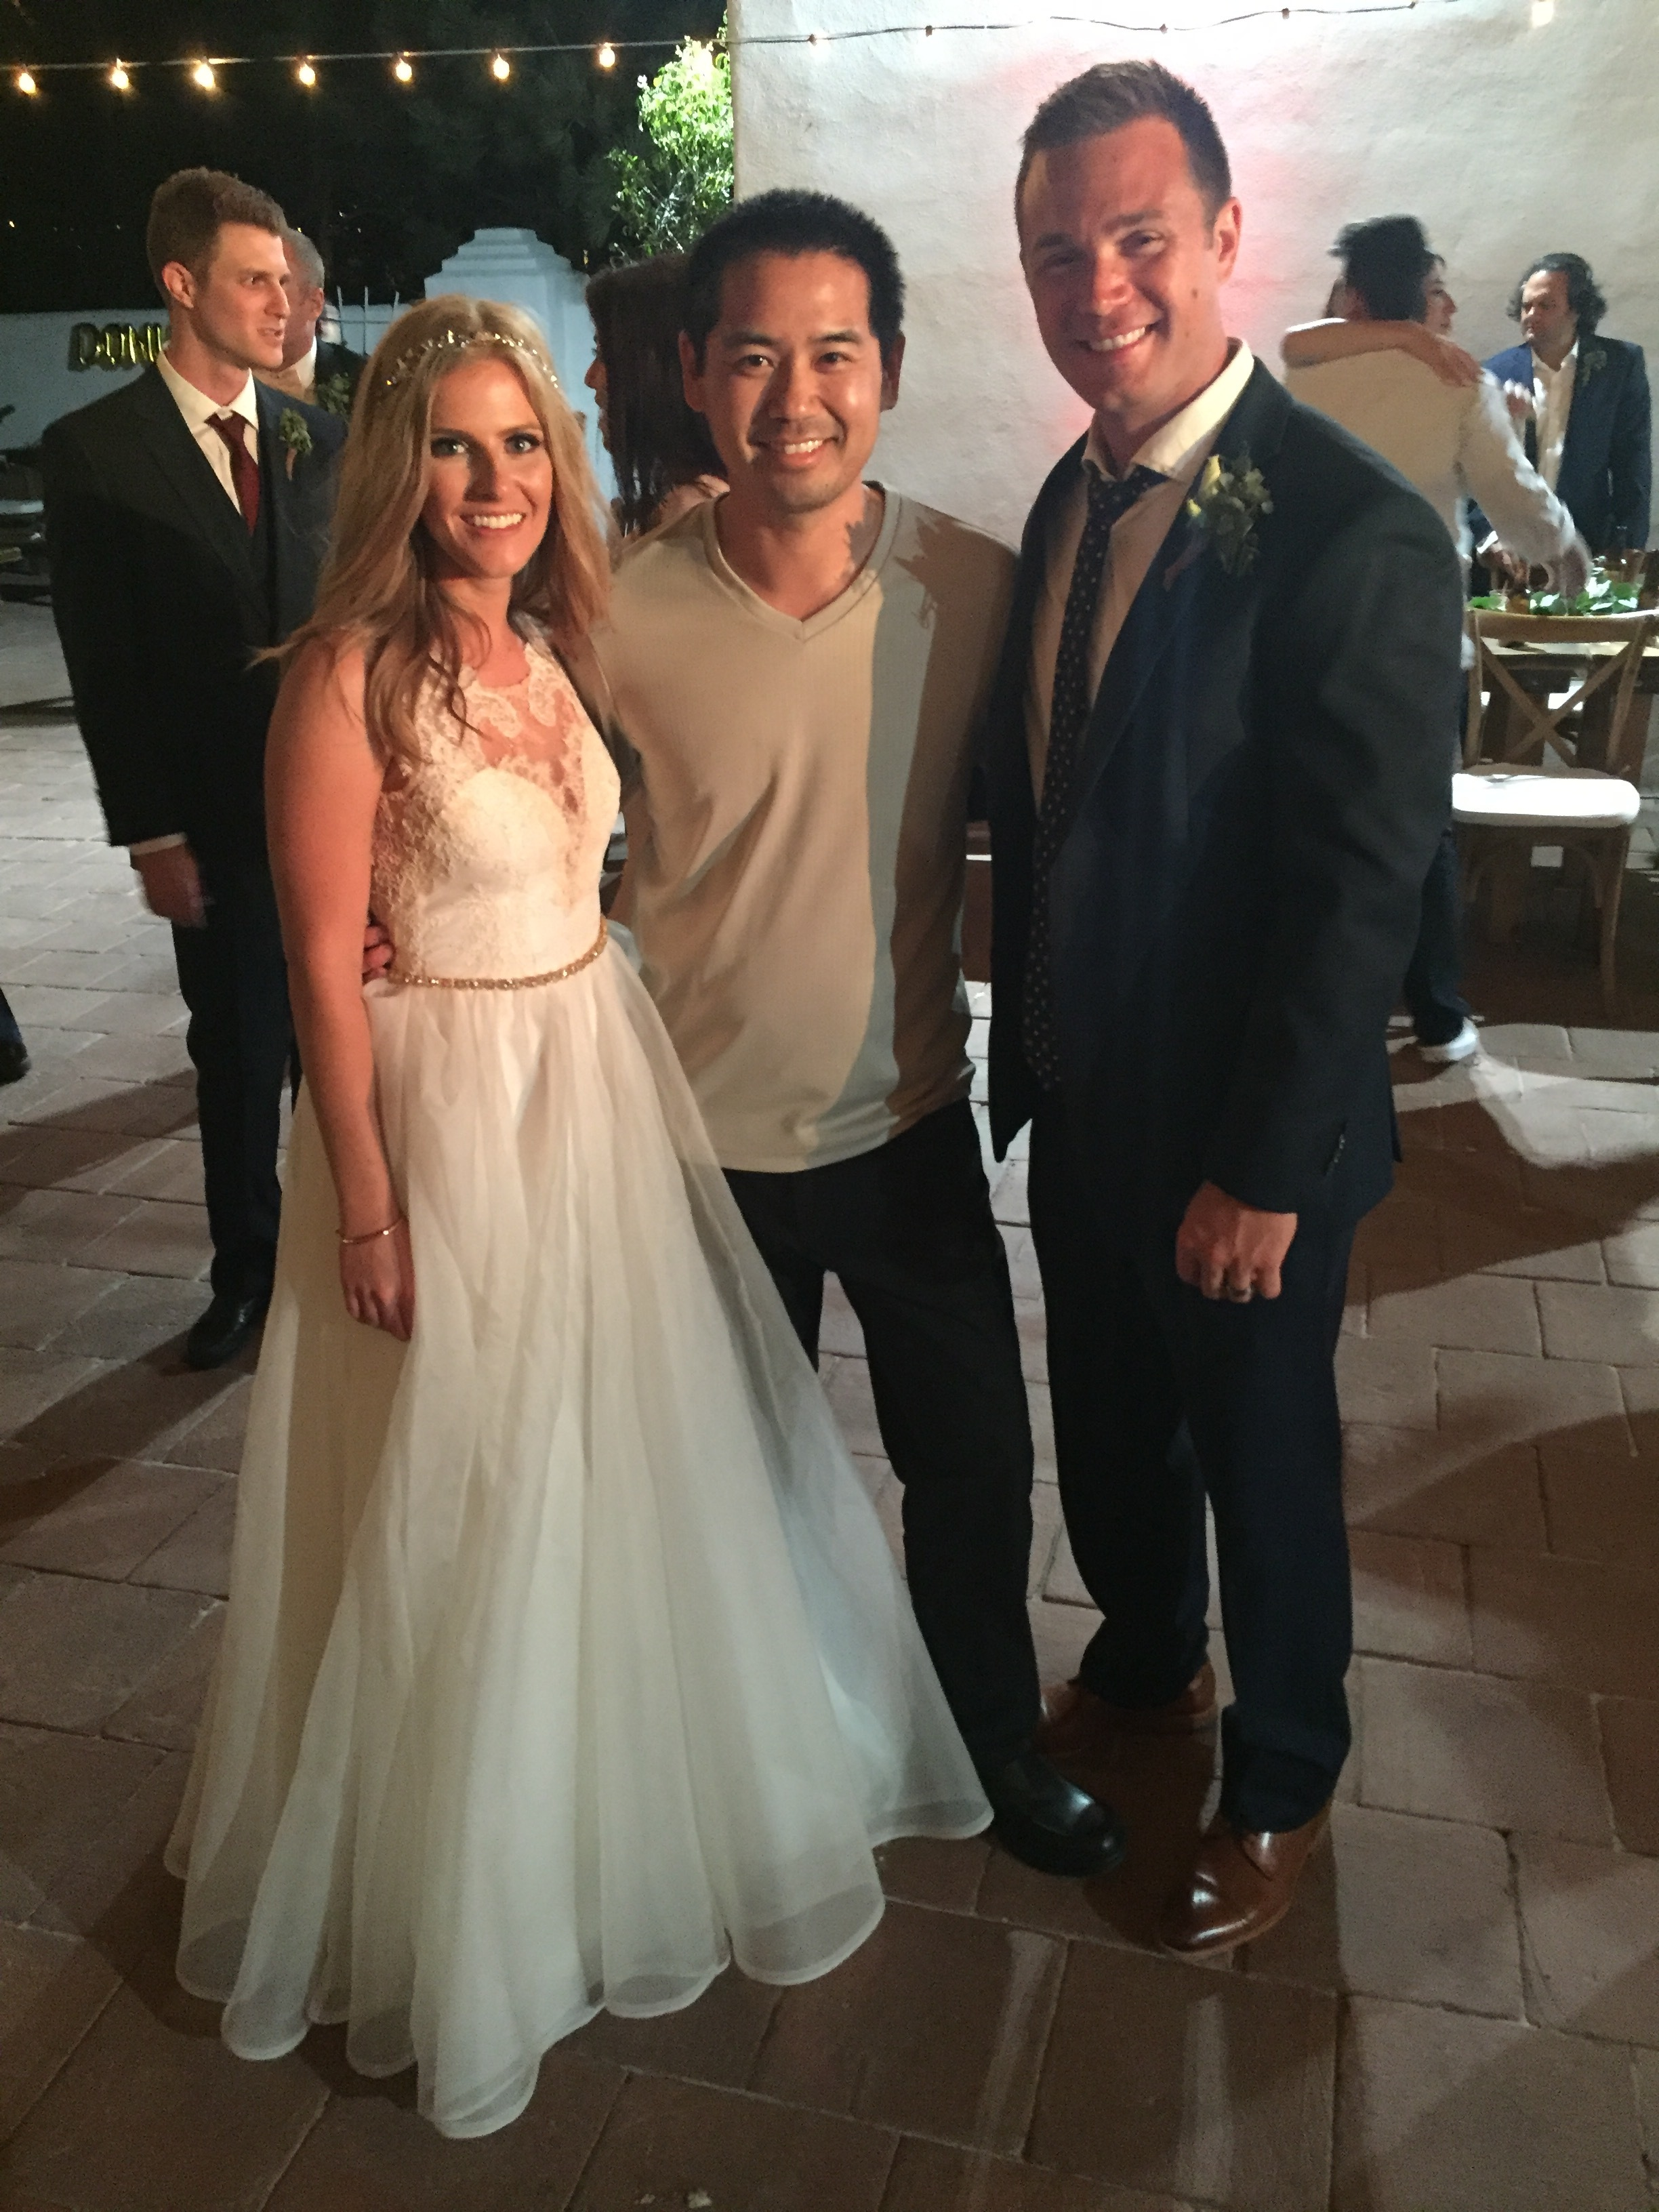 San Diego DJ Justin Kanoya with the bride and groom, Ashley and Chad, after their wedding at the Historic Cottage